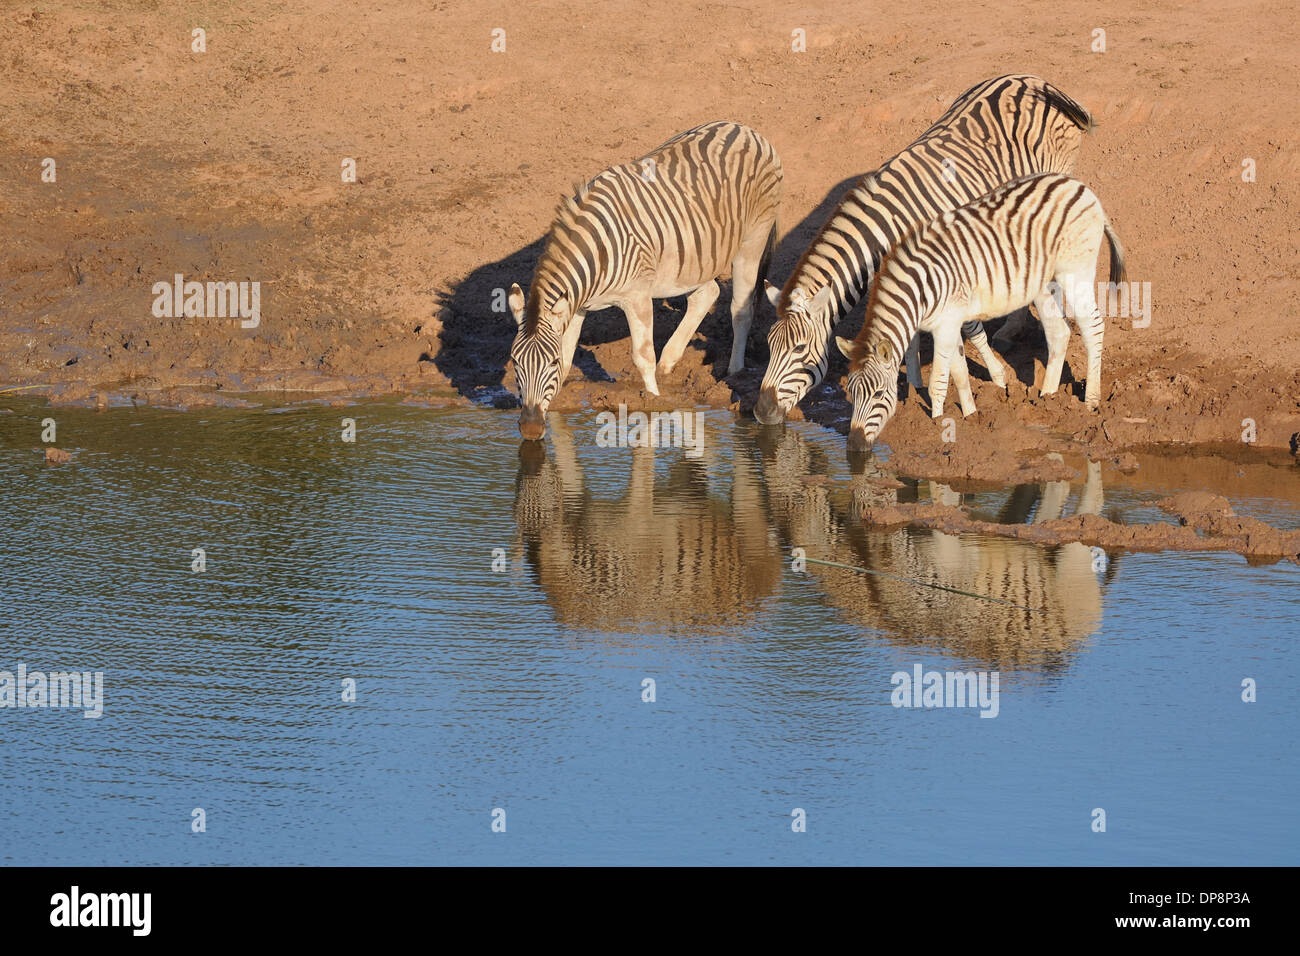 Burchell's zebras (Equus burchellii), drinking at a waterhole, Addo National Park, Eastern Cape, South Africa, Africa Stock Photo